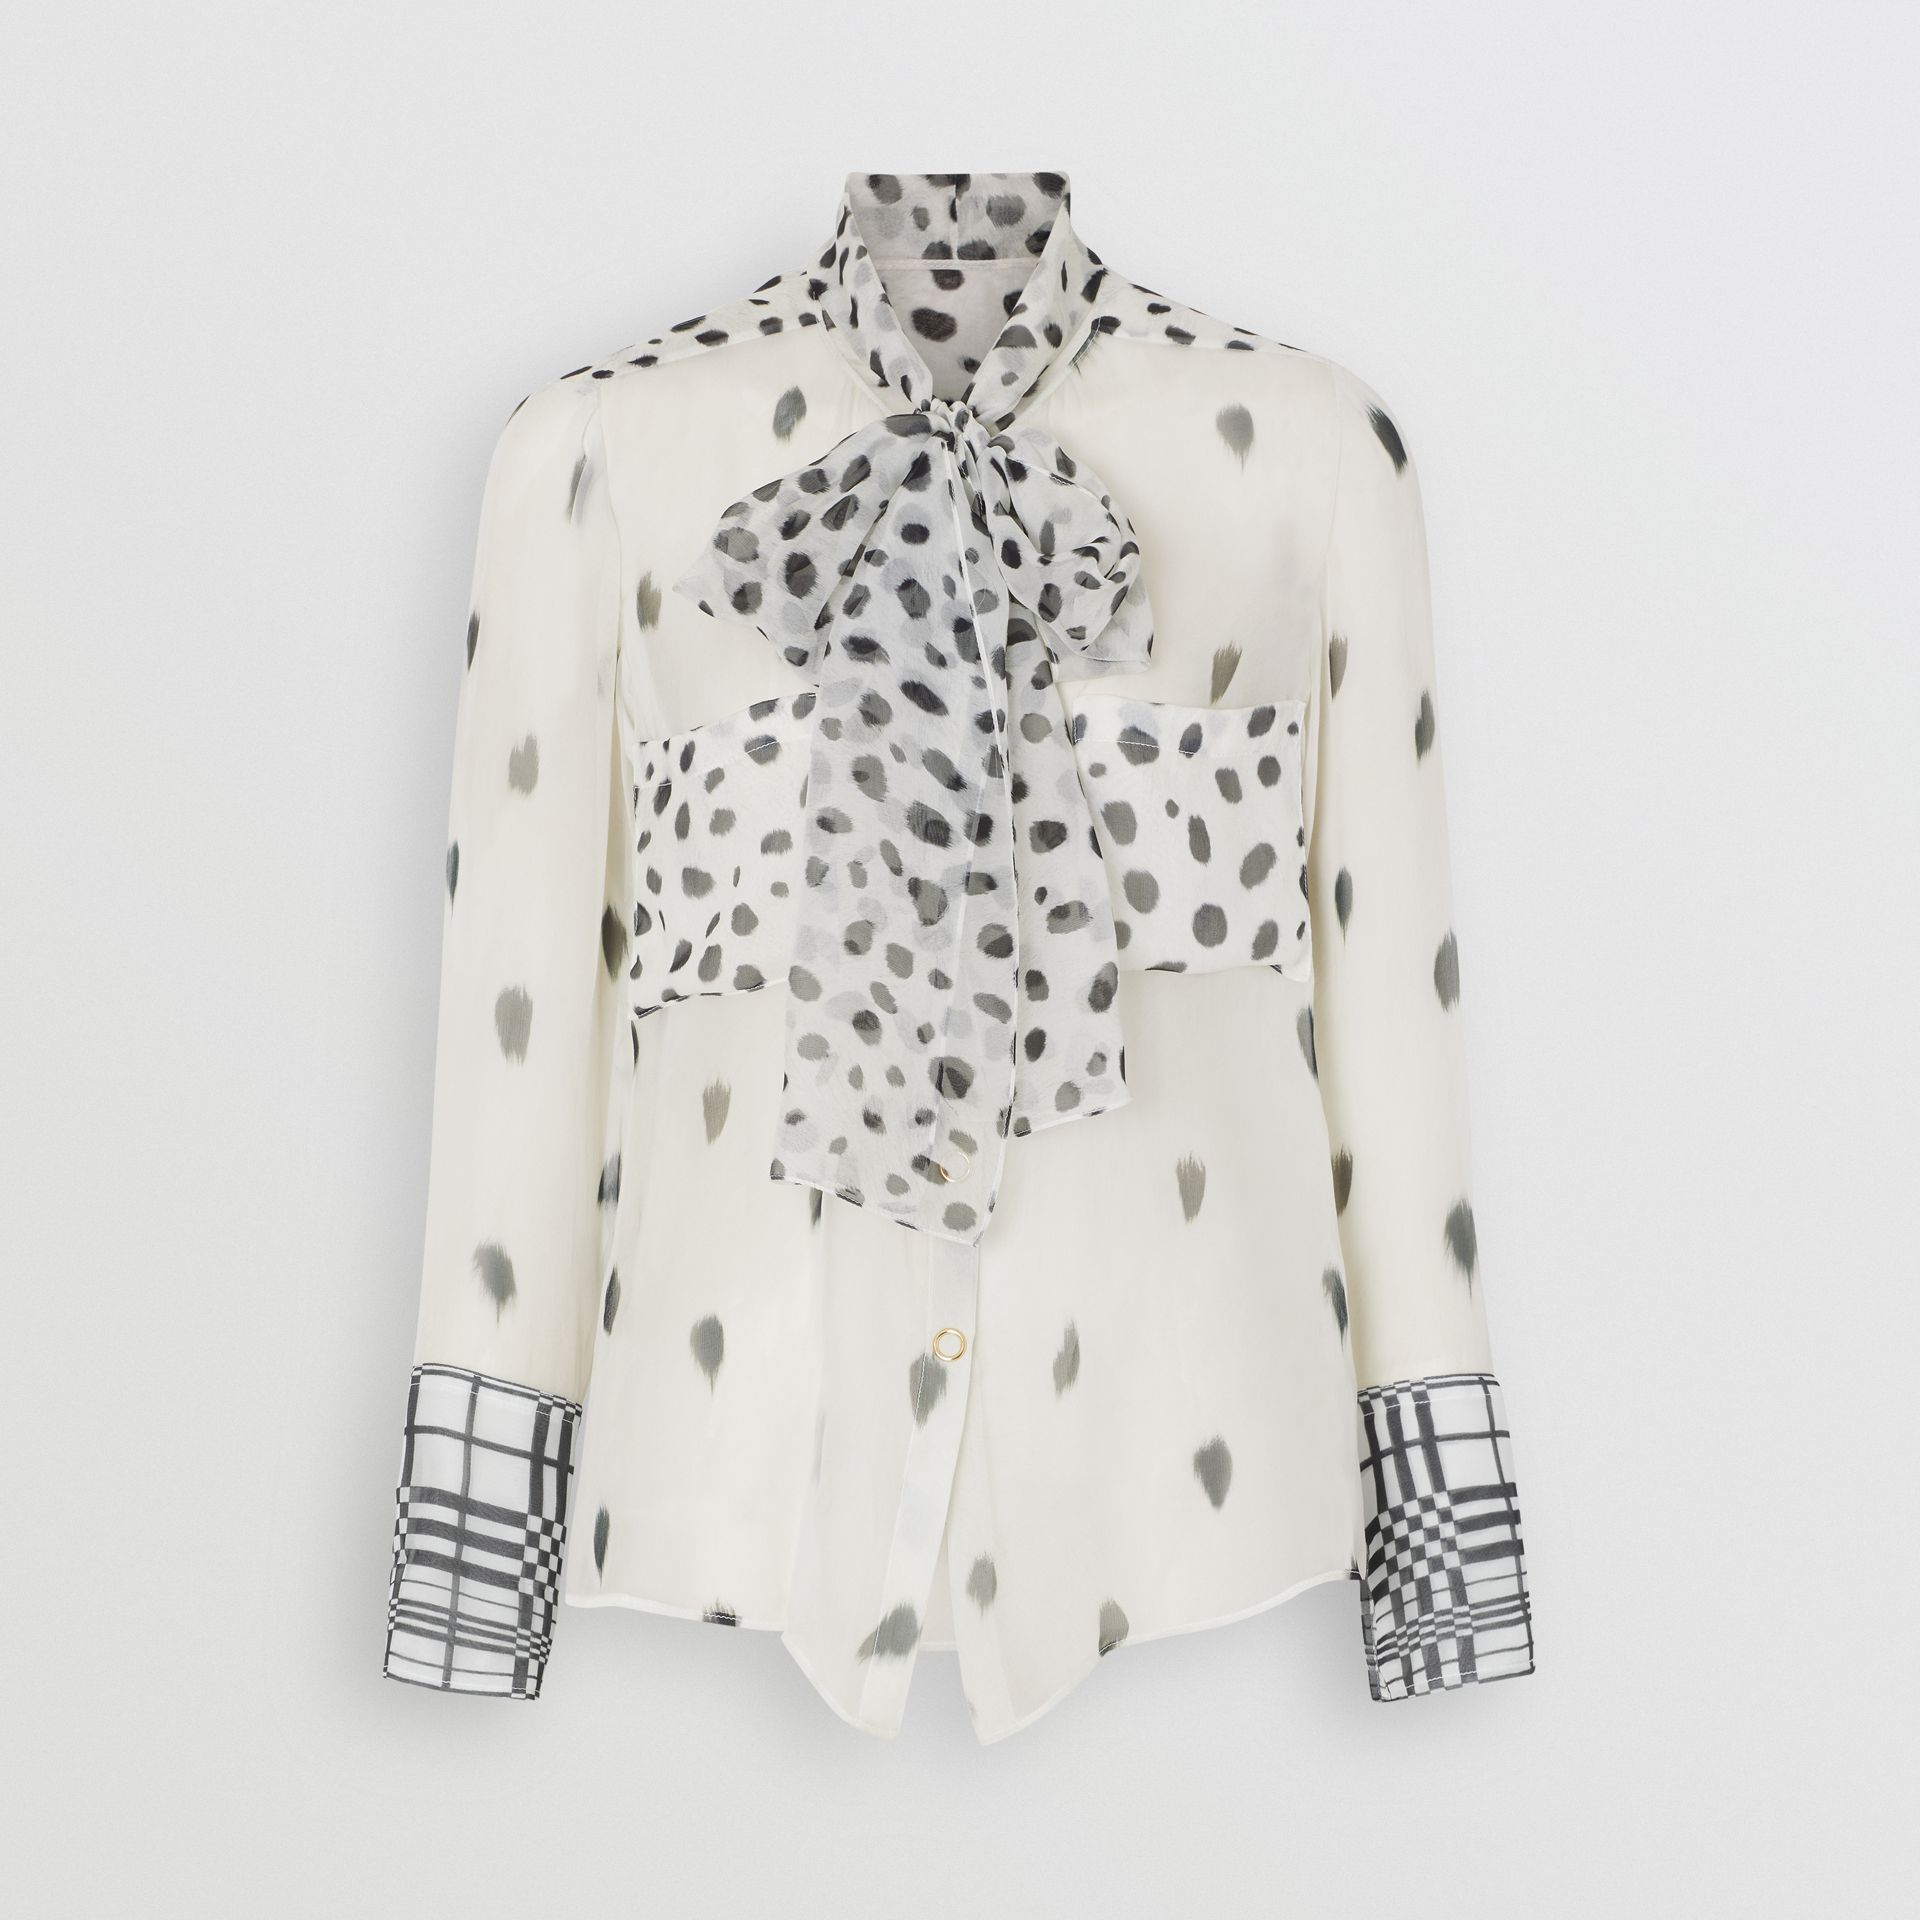 Dalmatian Print Silk Pussy-bow Blouse in Black/white - Women | Burberry - gallery image 3